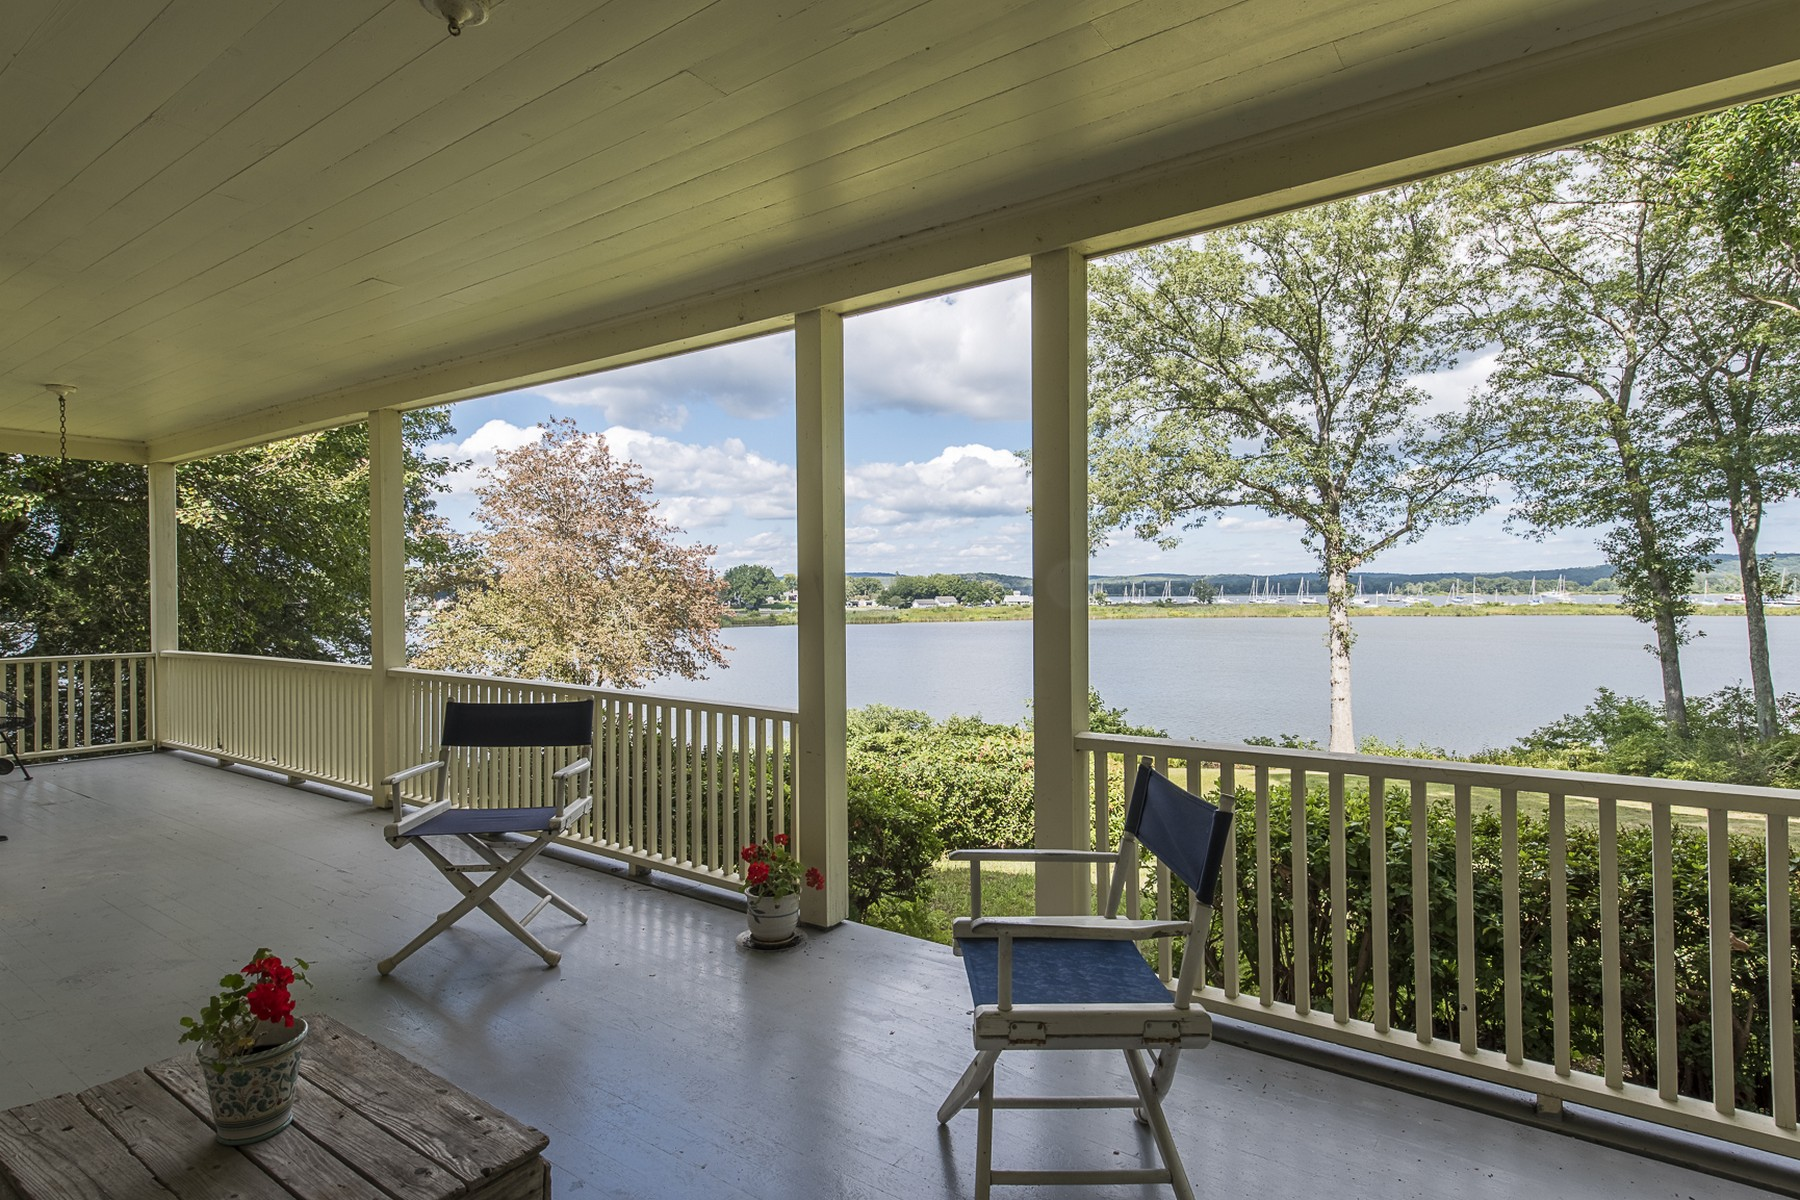 Single Family Homes for Sale at Direct Waterfront on 3.5 Acres 101 Saybrook Road Essex, Connecticut 06426 United States